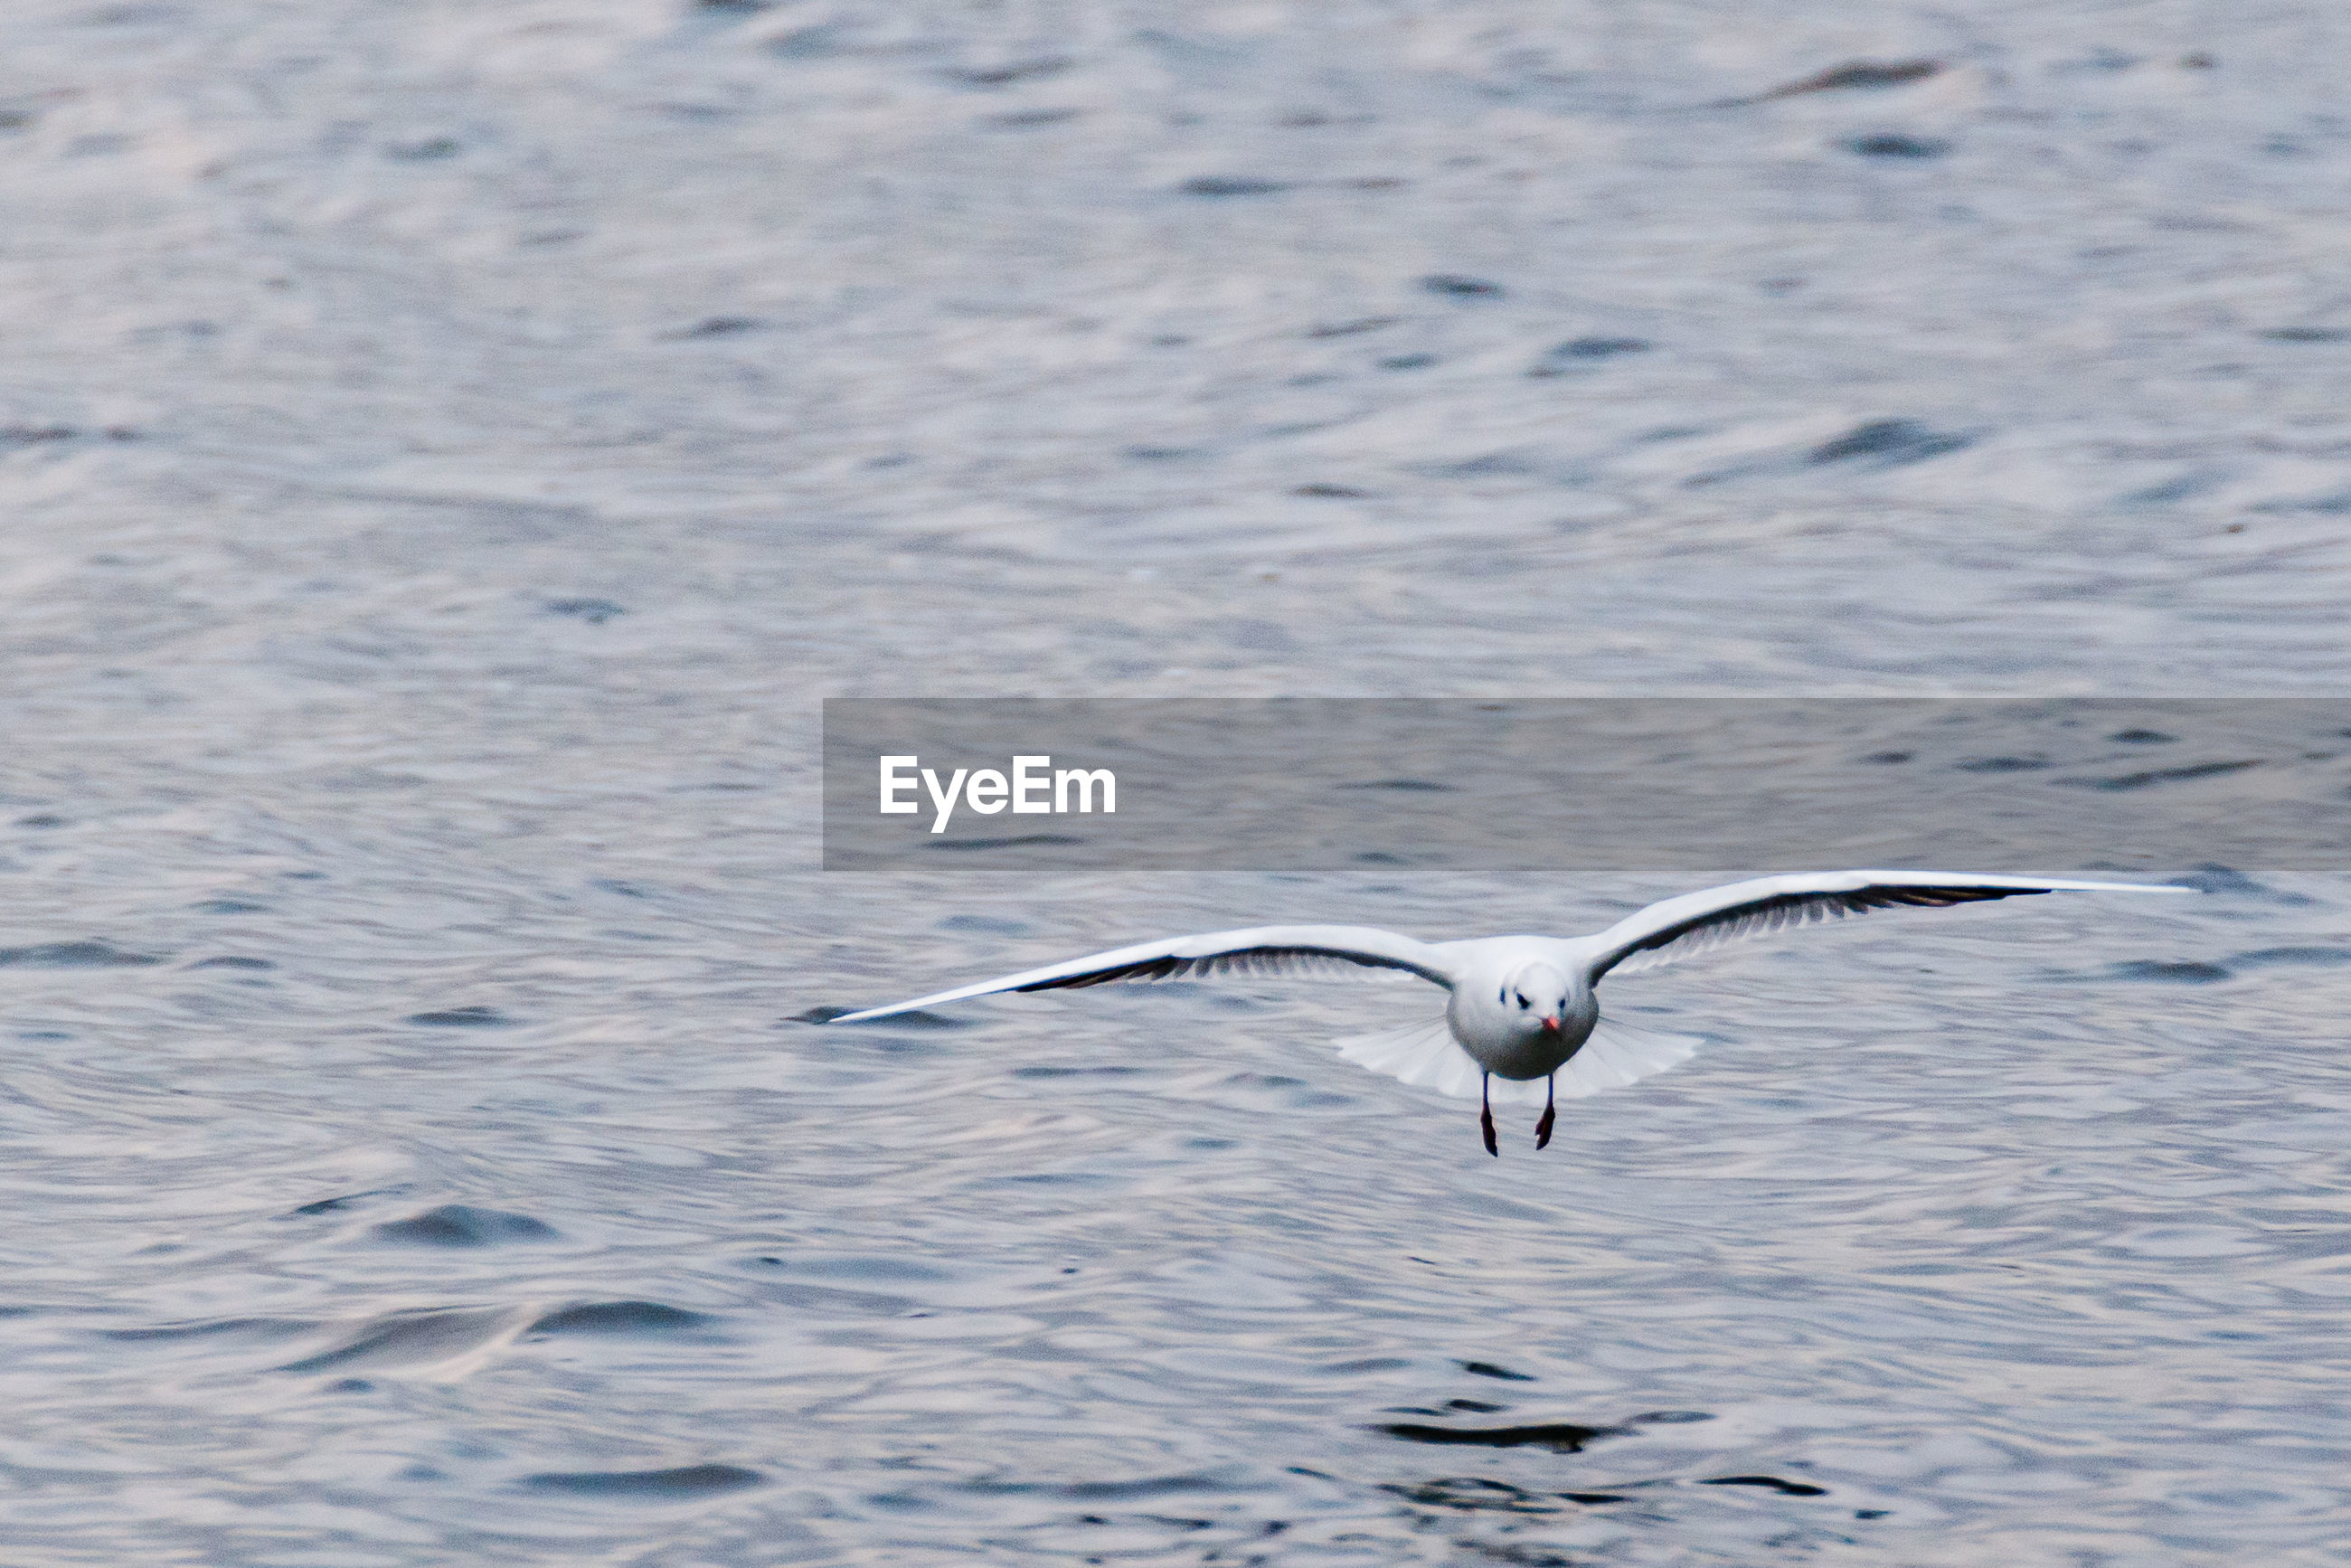 BIRD FLYING AGAINST WATER